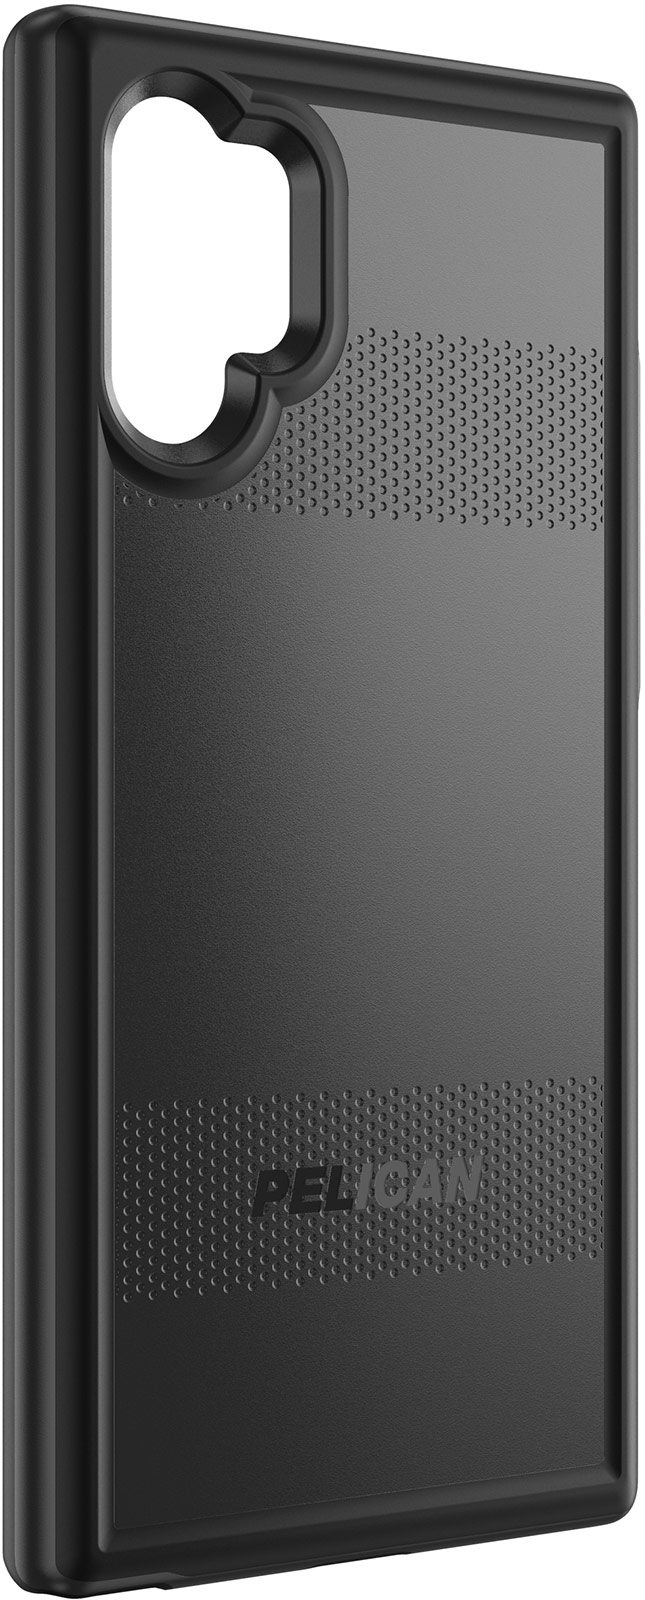 pelican galaxy note 10 plus protector black tough phone case